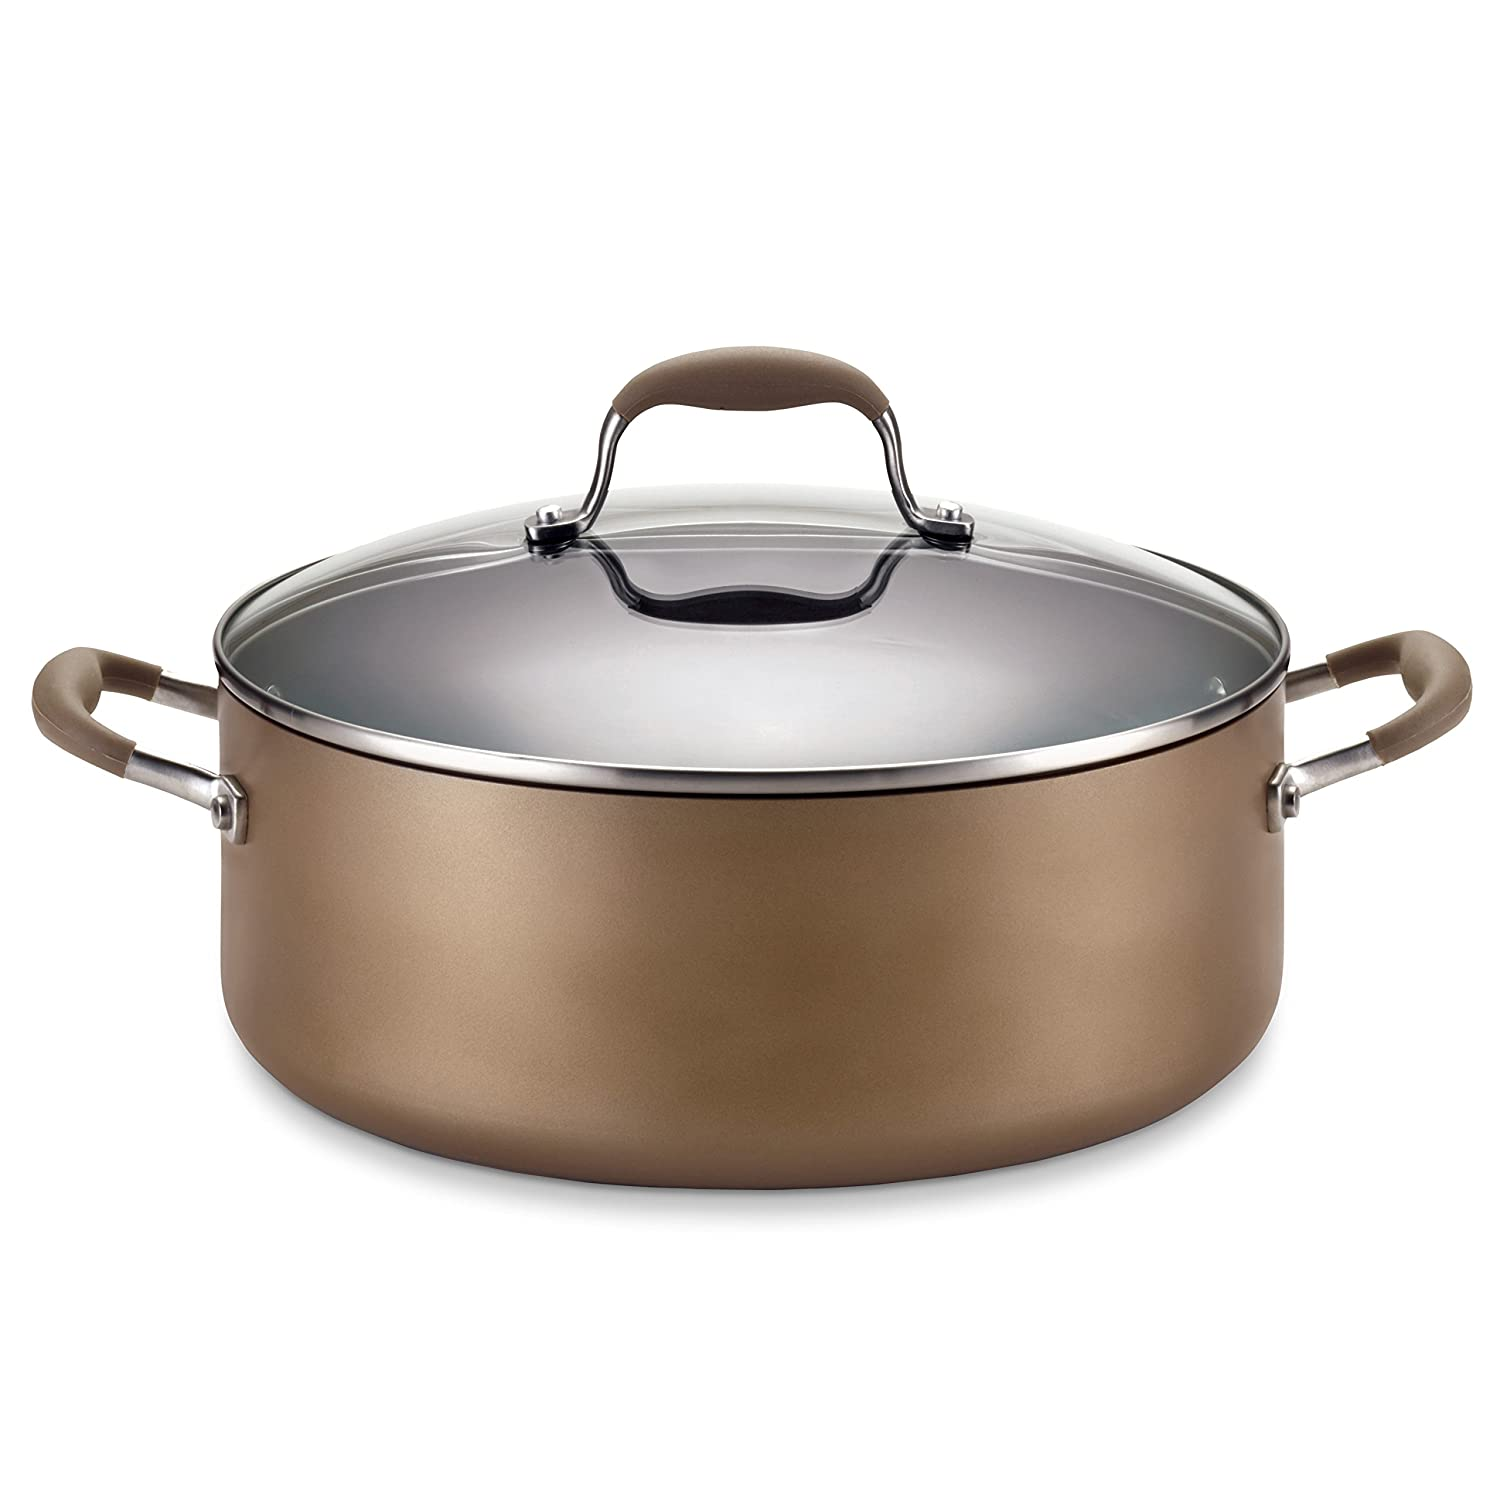 Anolon Advanced Hard Anodized Nonstick 7-1/2-Quart Covered Wide Stockpot with out Steamer Insert 82825